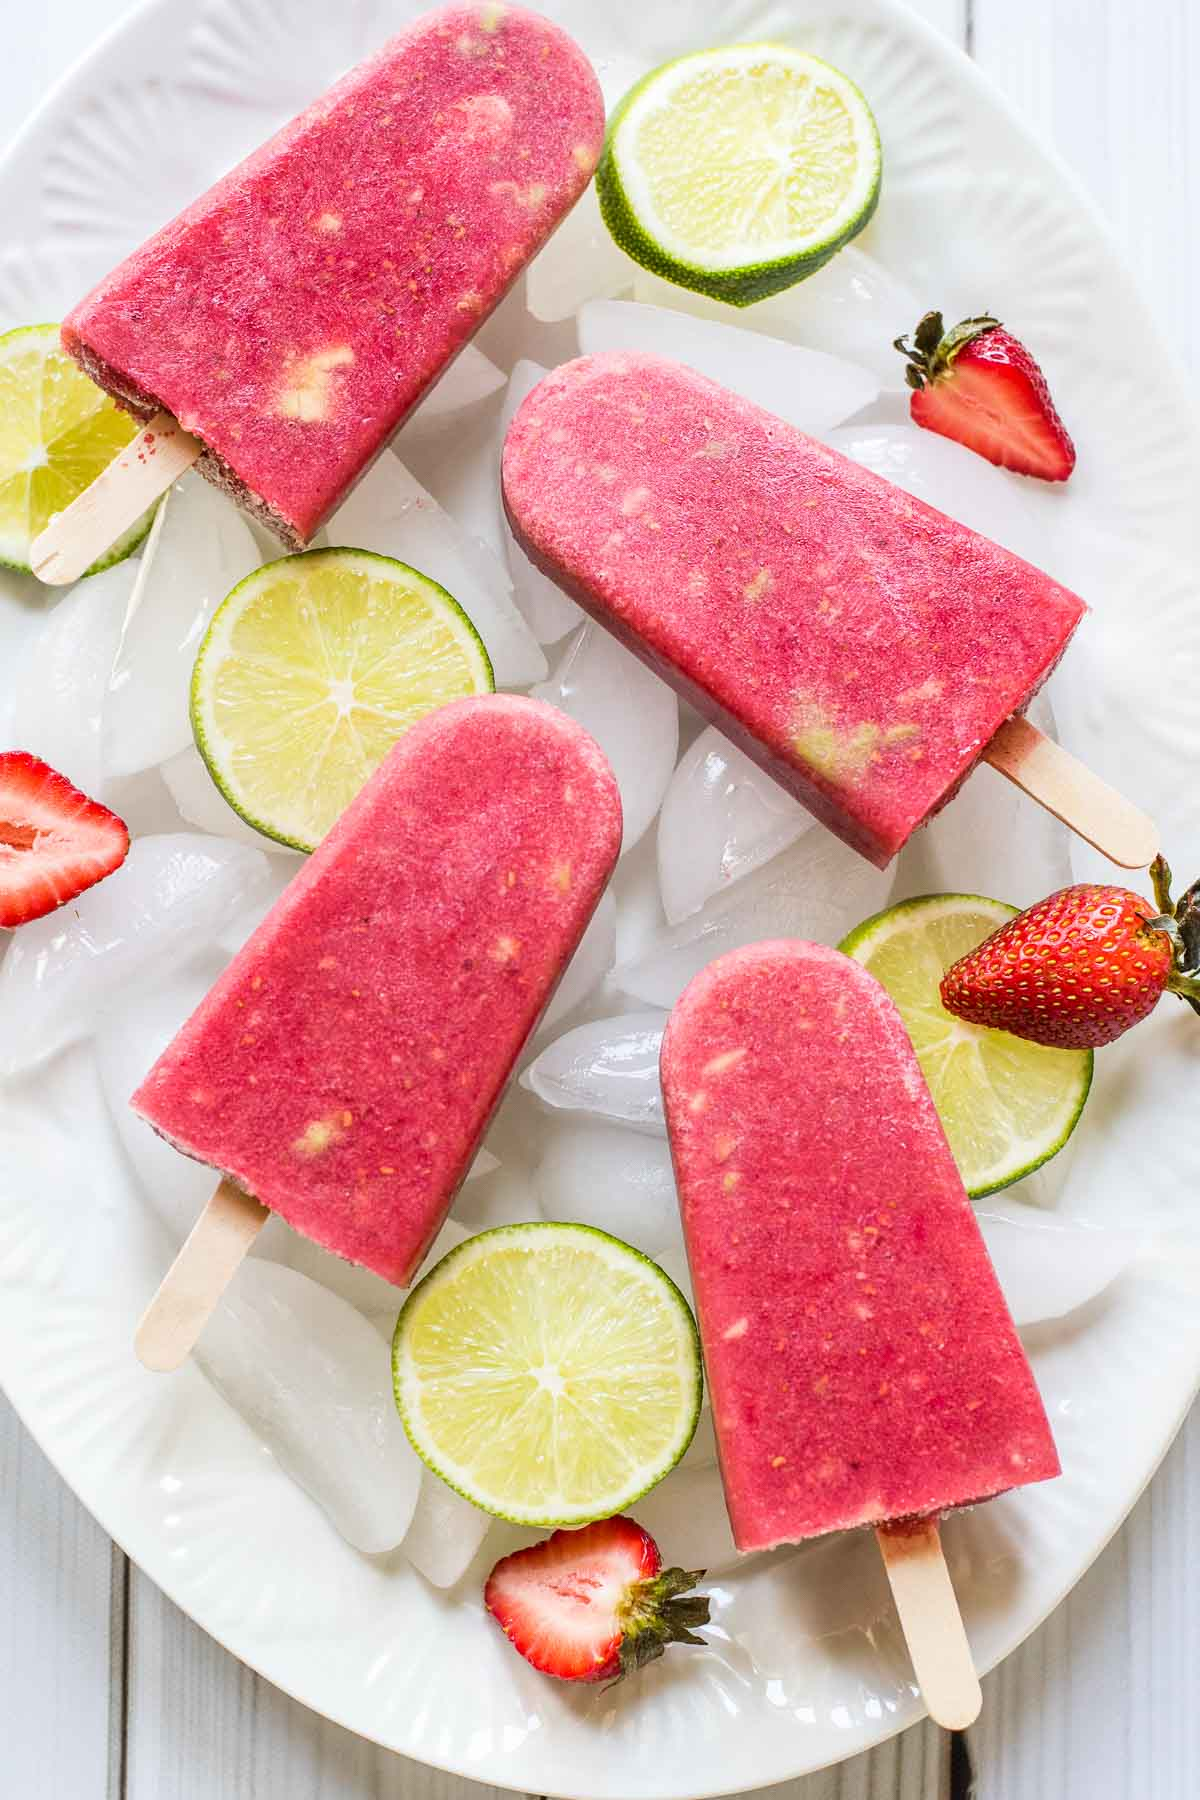 These Berry Avocado Popsicles are easy, healthy, and so refreshing-the perfect summer treat!